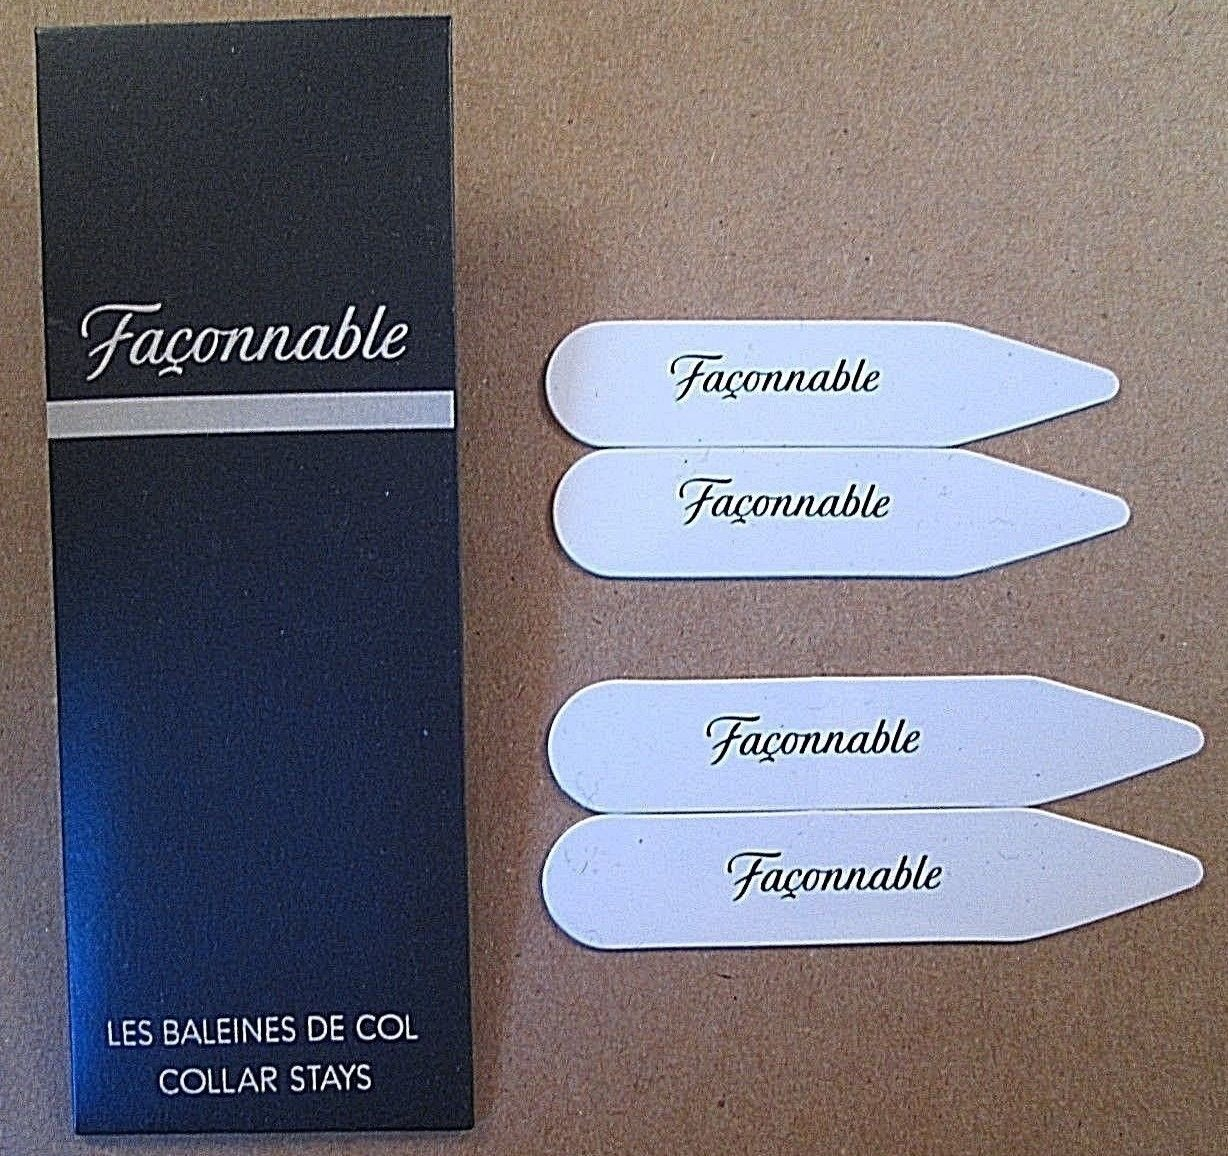 20 PACKS FACONNABLE 80 SHIRT COLLAR STAYS 2 SIZES 2 INCH & 2 & 1/2 INCH PLASTIC